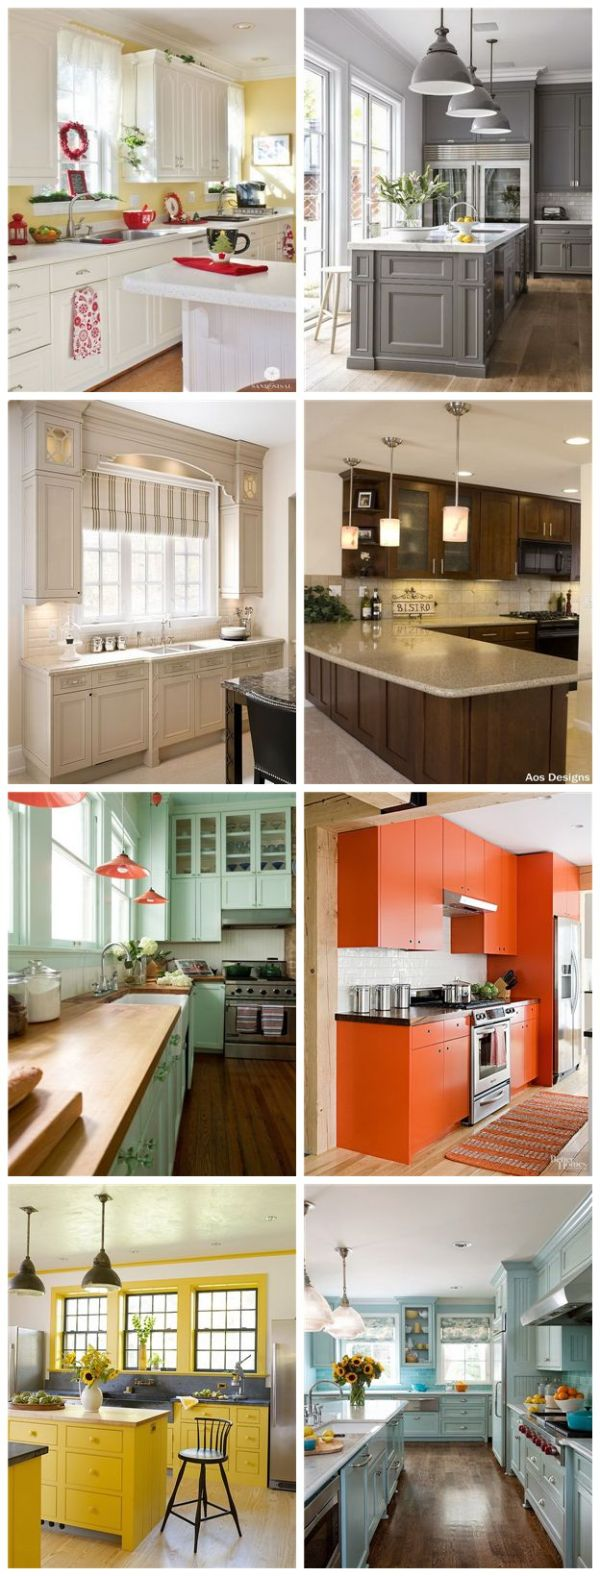 Popular Cabinet Paint Colors most popular kitchen cabinet paint color ideas - for creative juice